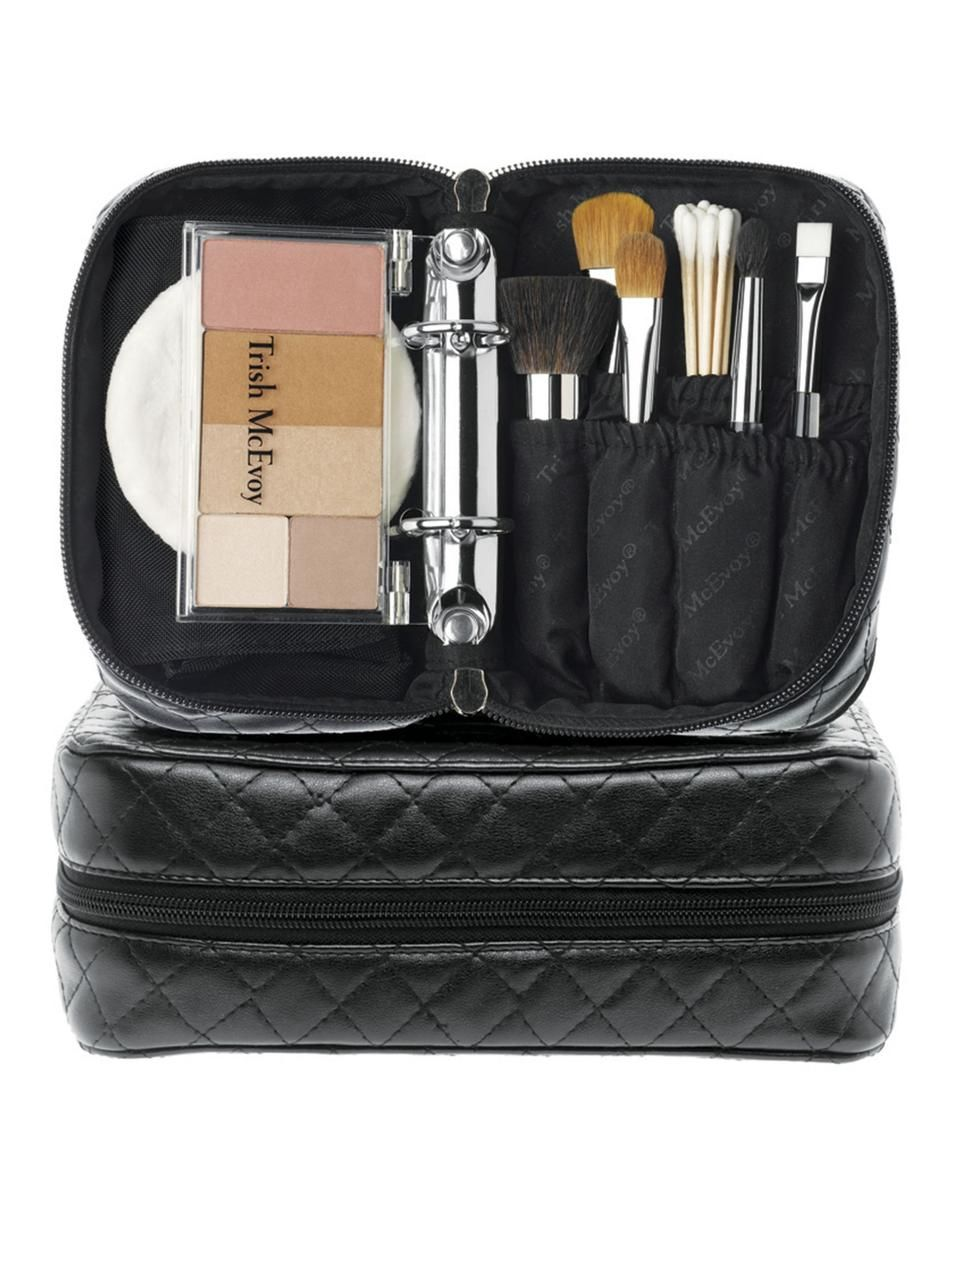 POPSUGAR's 2013 Holiday Gift Guide Makeup, Mini makeup